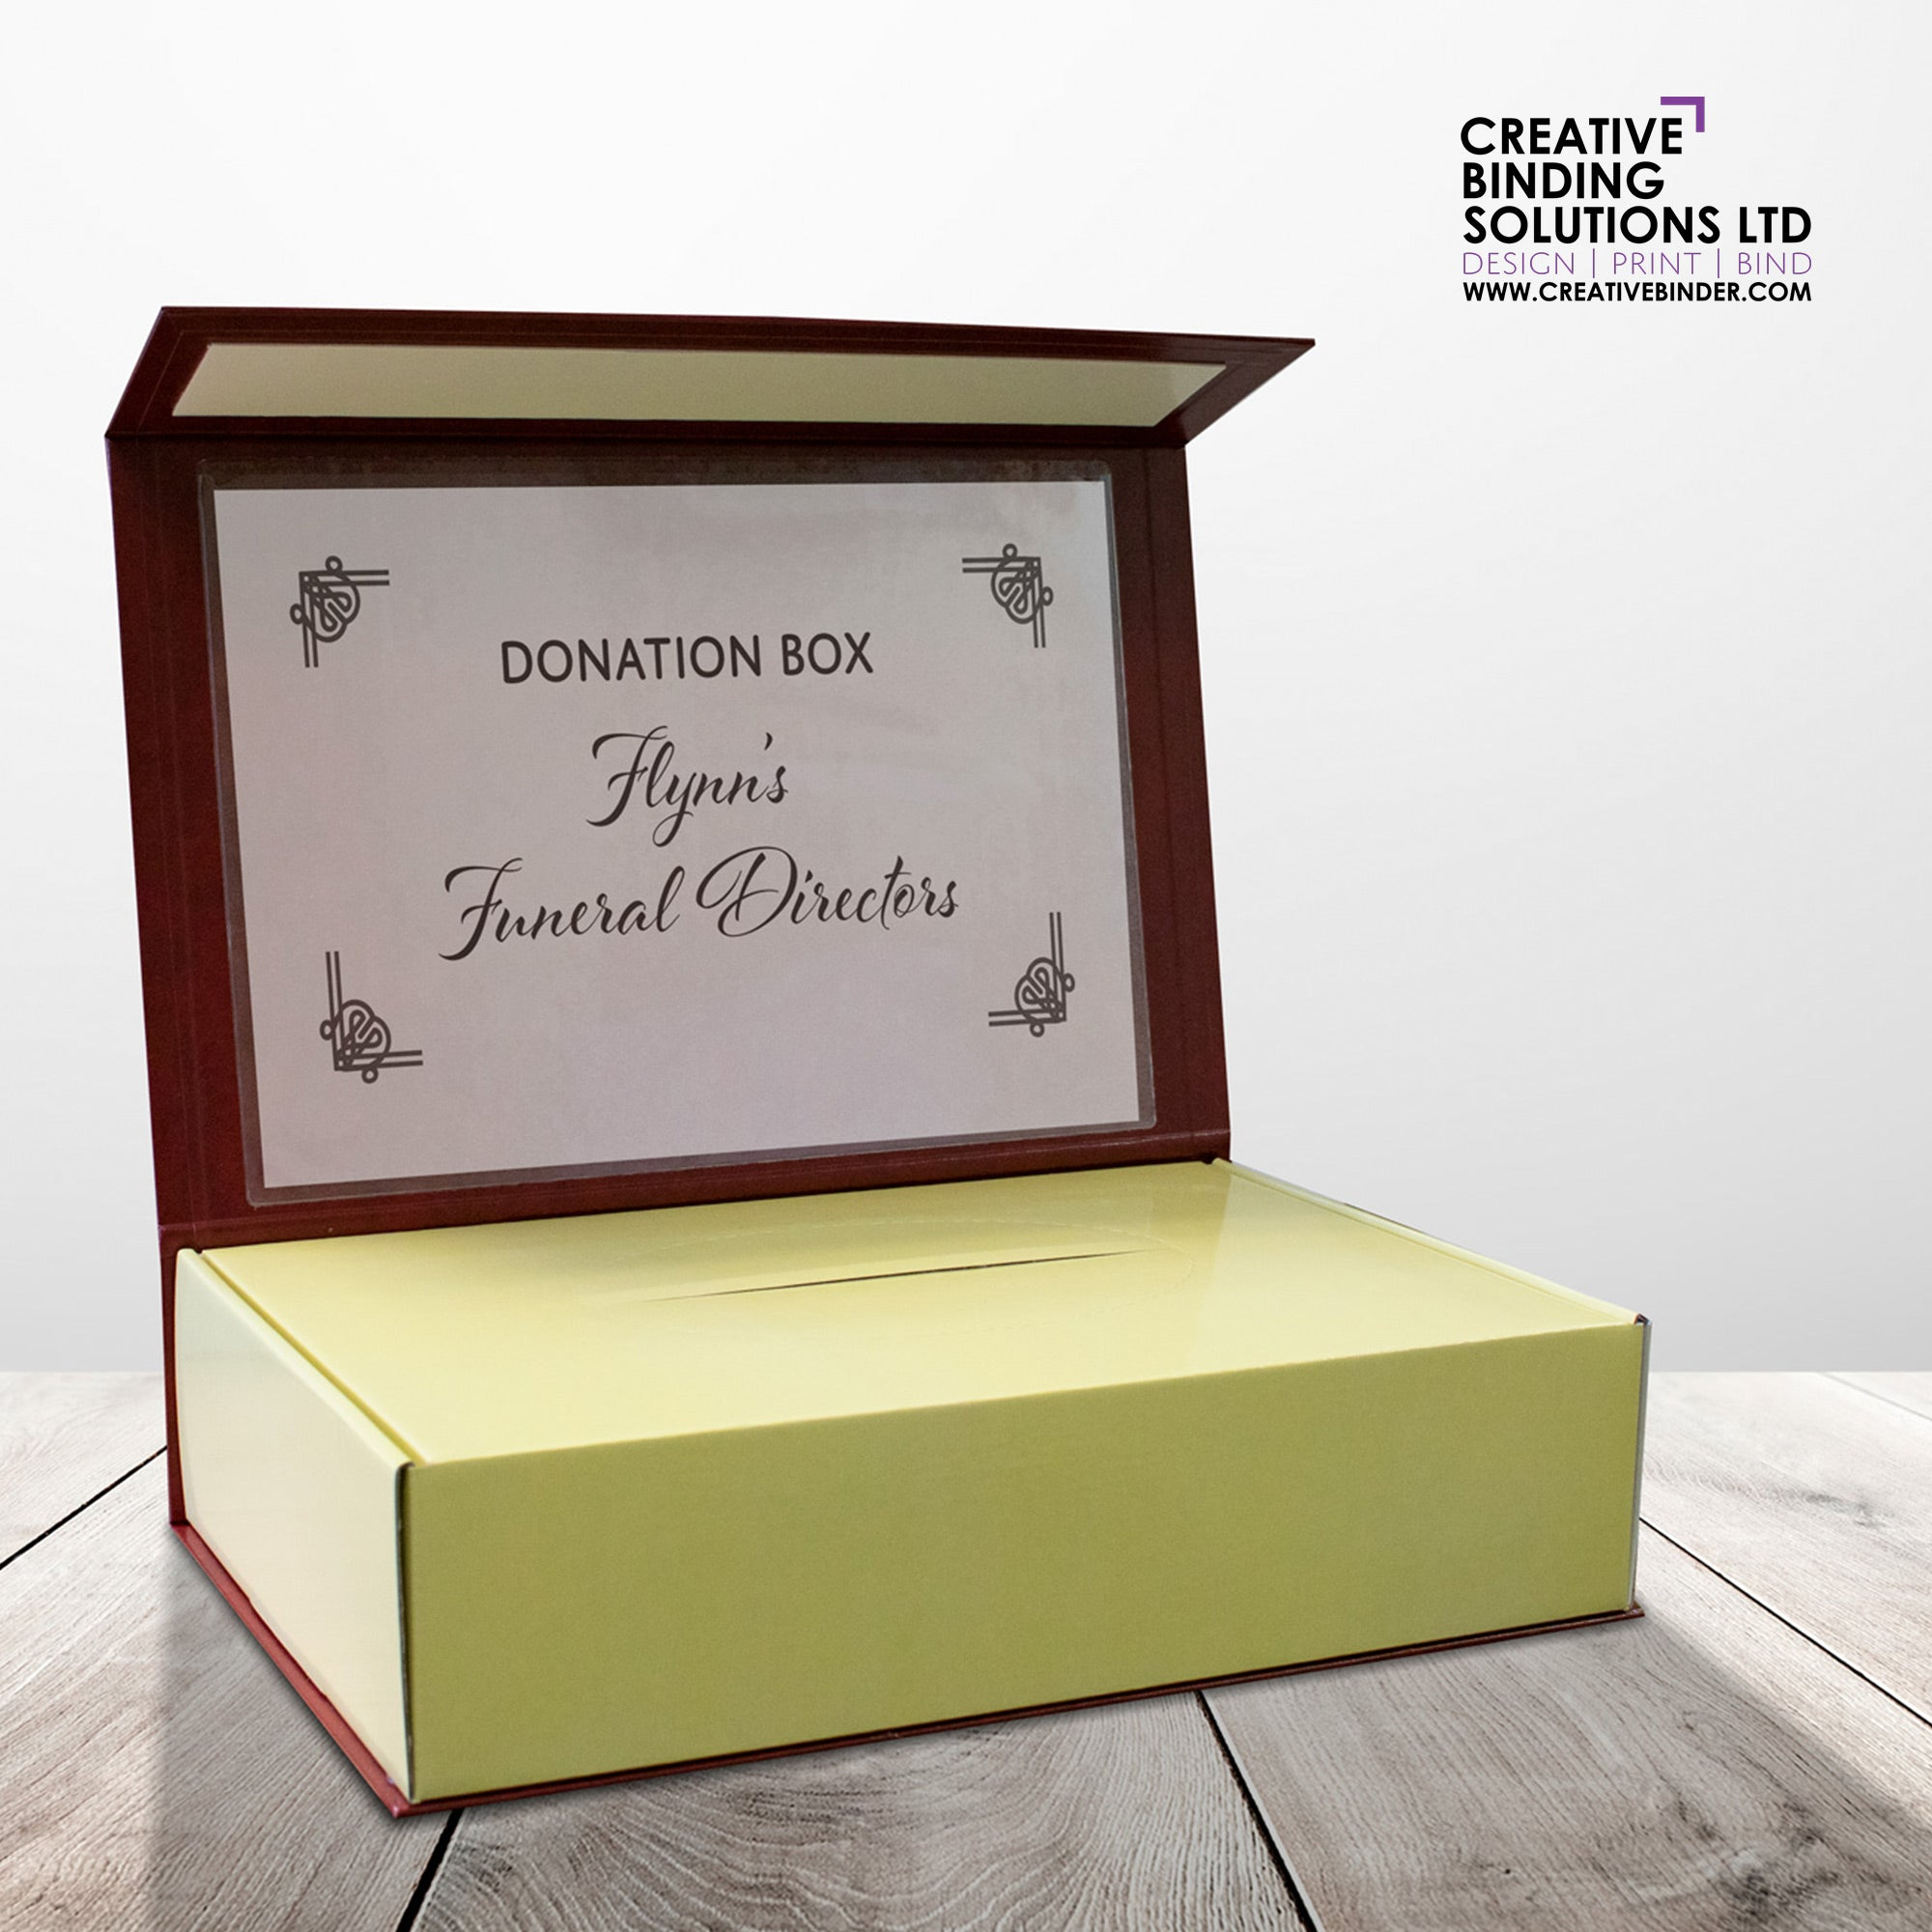 GENERIC DONATION BOXES